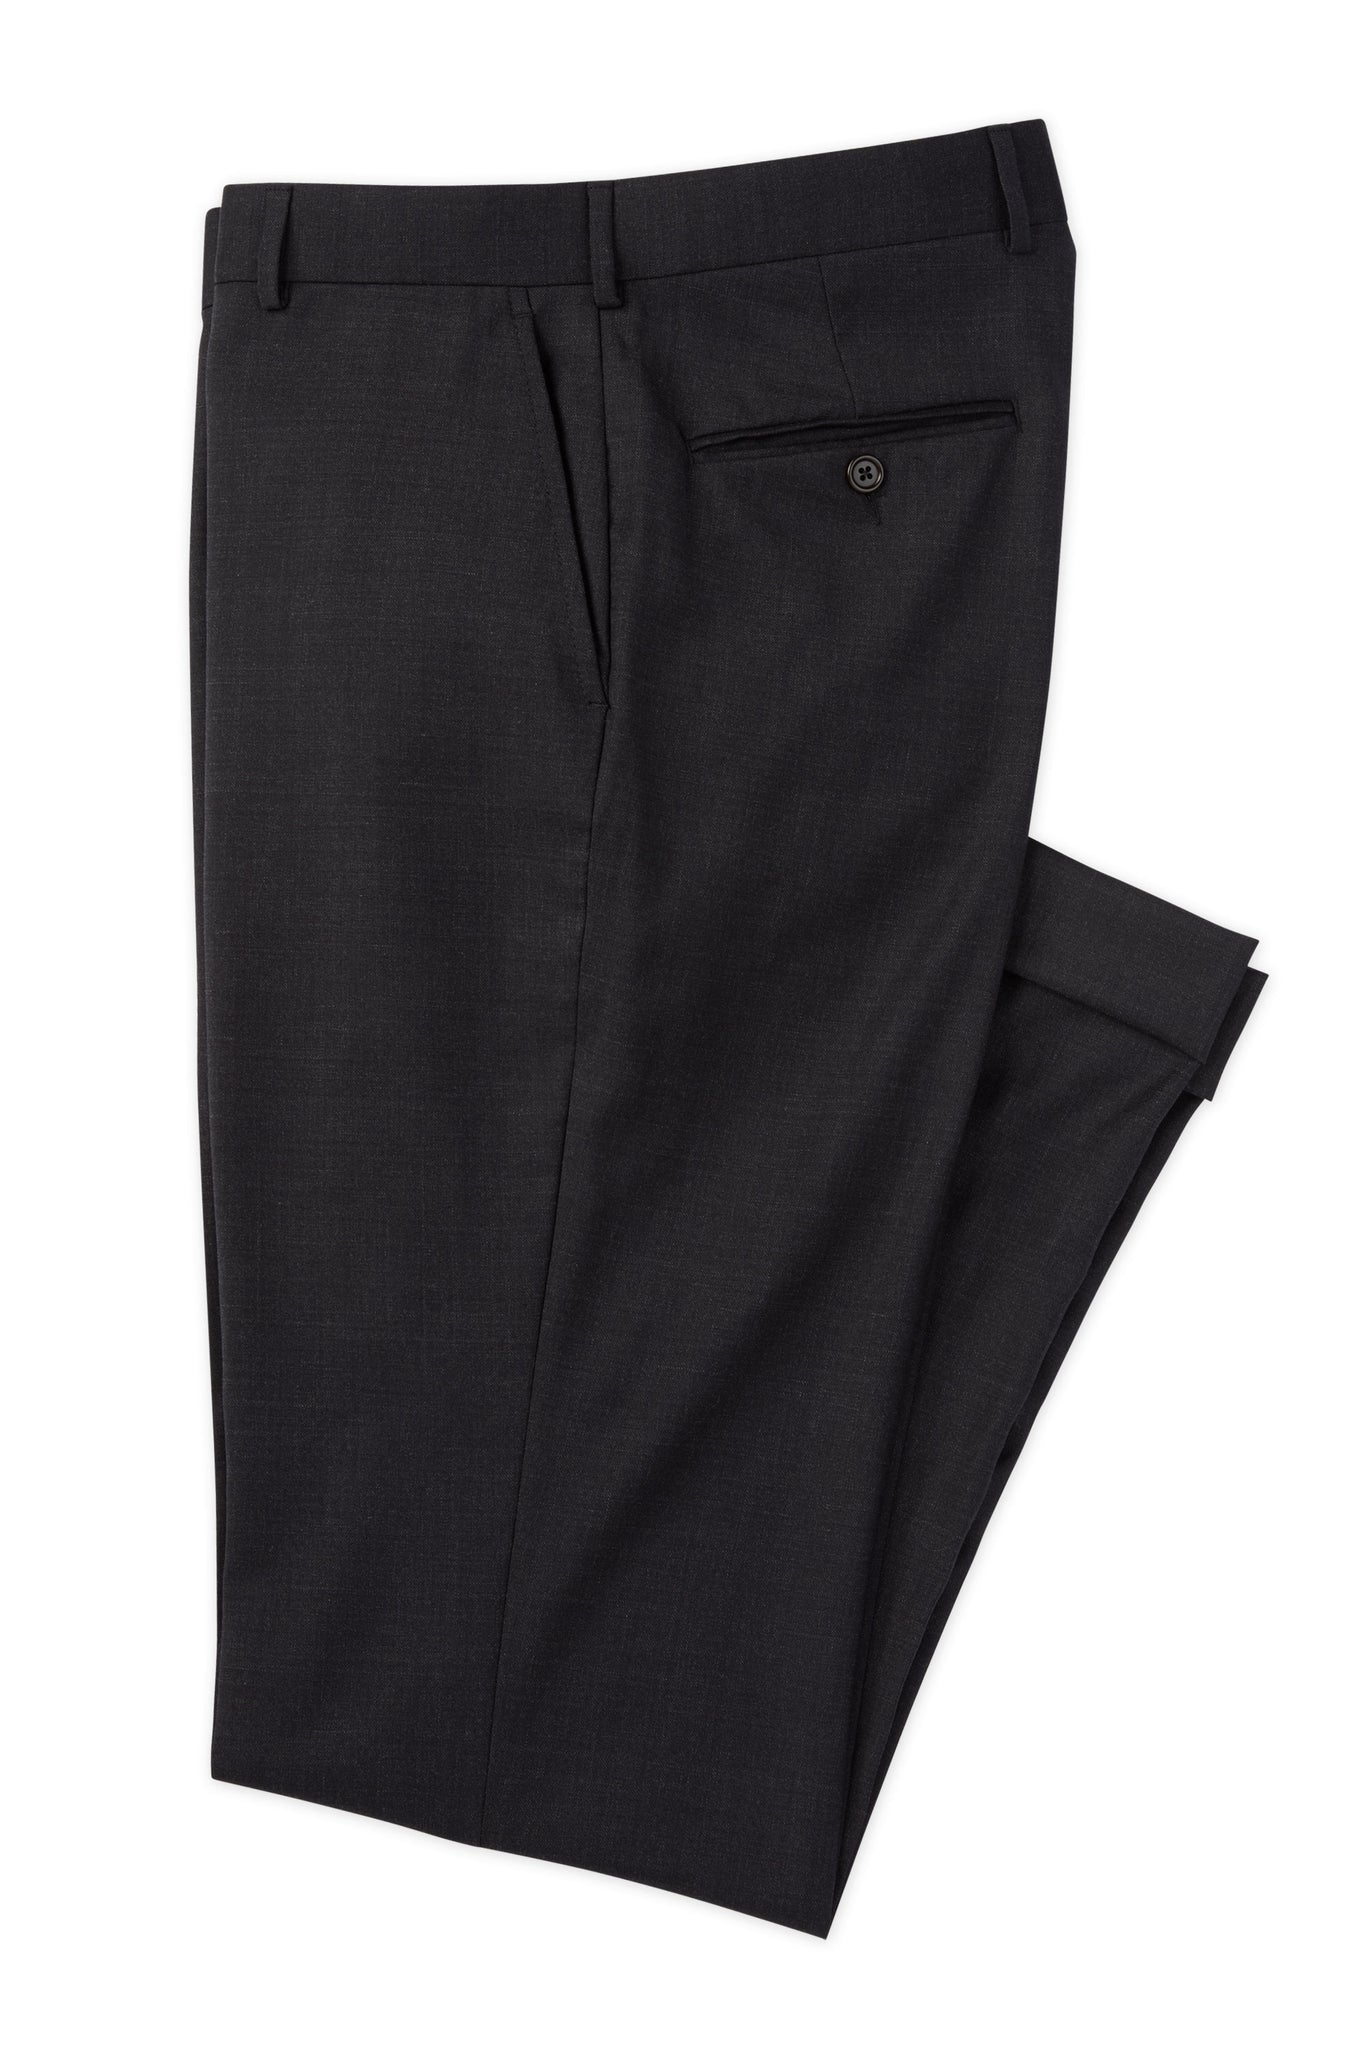 Modern Fit Charcoal H-Tech Performance Wool Suit -  Hardwick.com